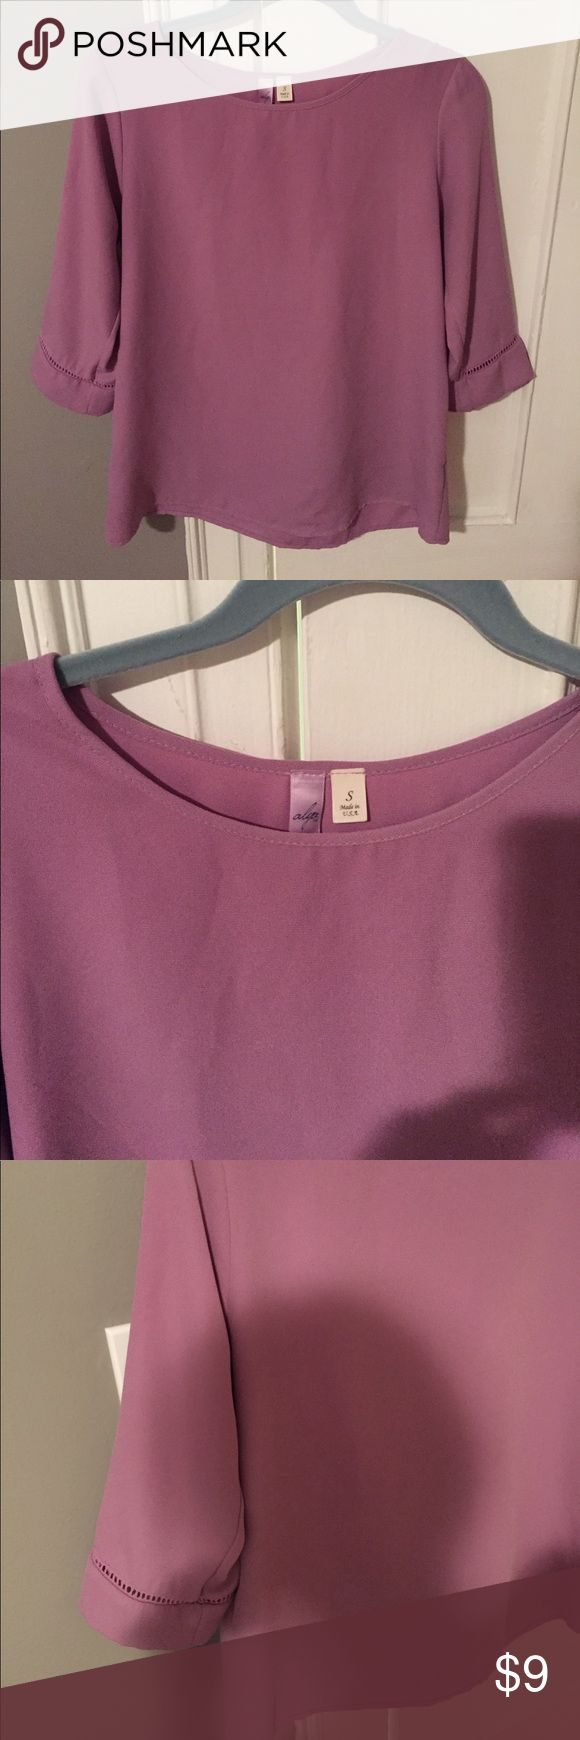 FRANCESCA'S COLLECTION LAVENDER BLOUSE size S Beautiful color! Pretty detail on the sleeves. Dress down with a pair of skinny jeans or dress up for work with dress pants. Gently worn- no stains. Francesca's Collections Tops Blouses